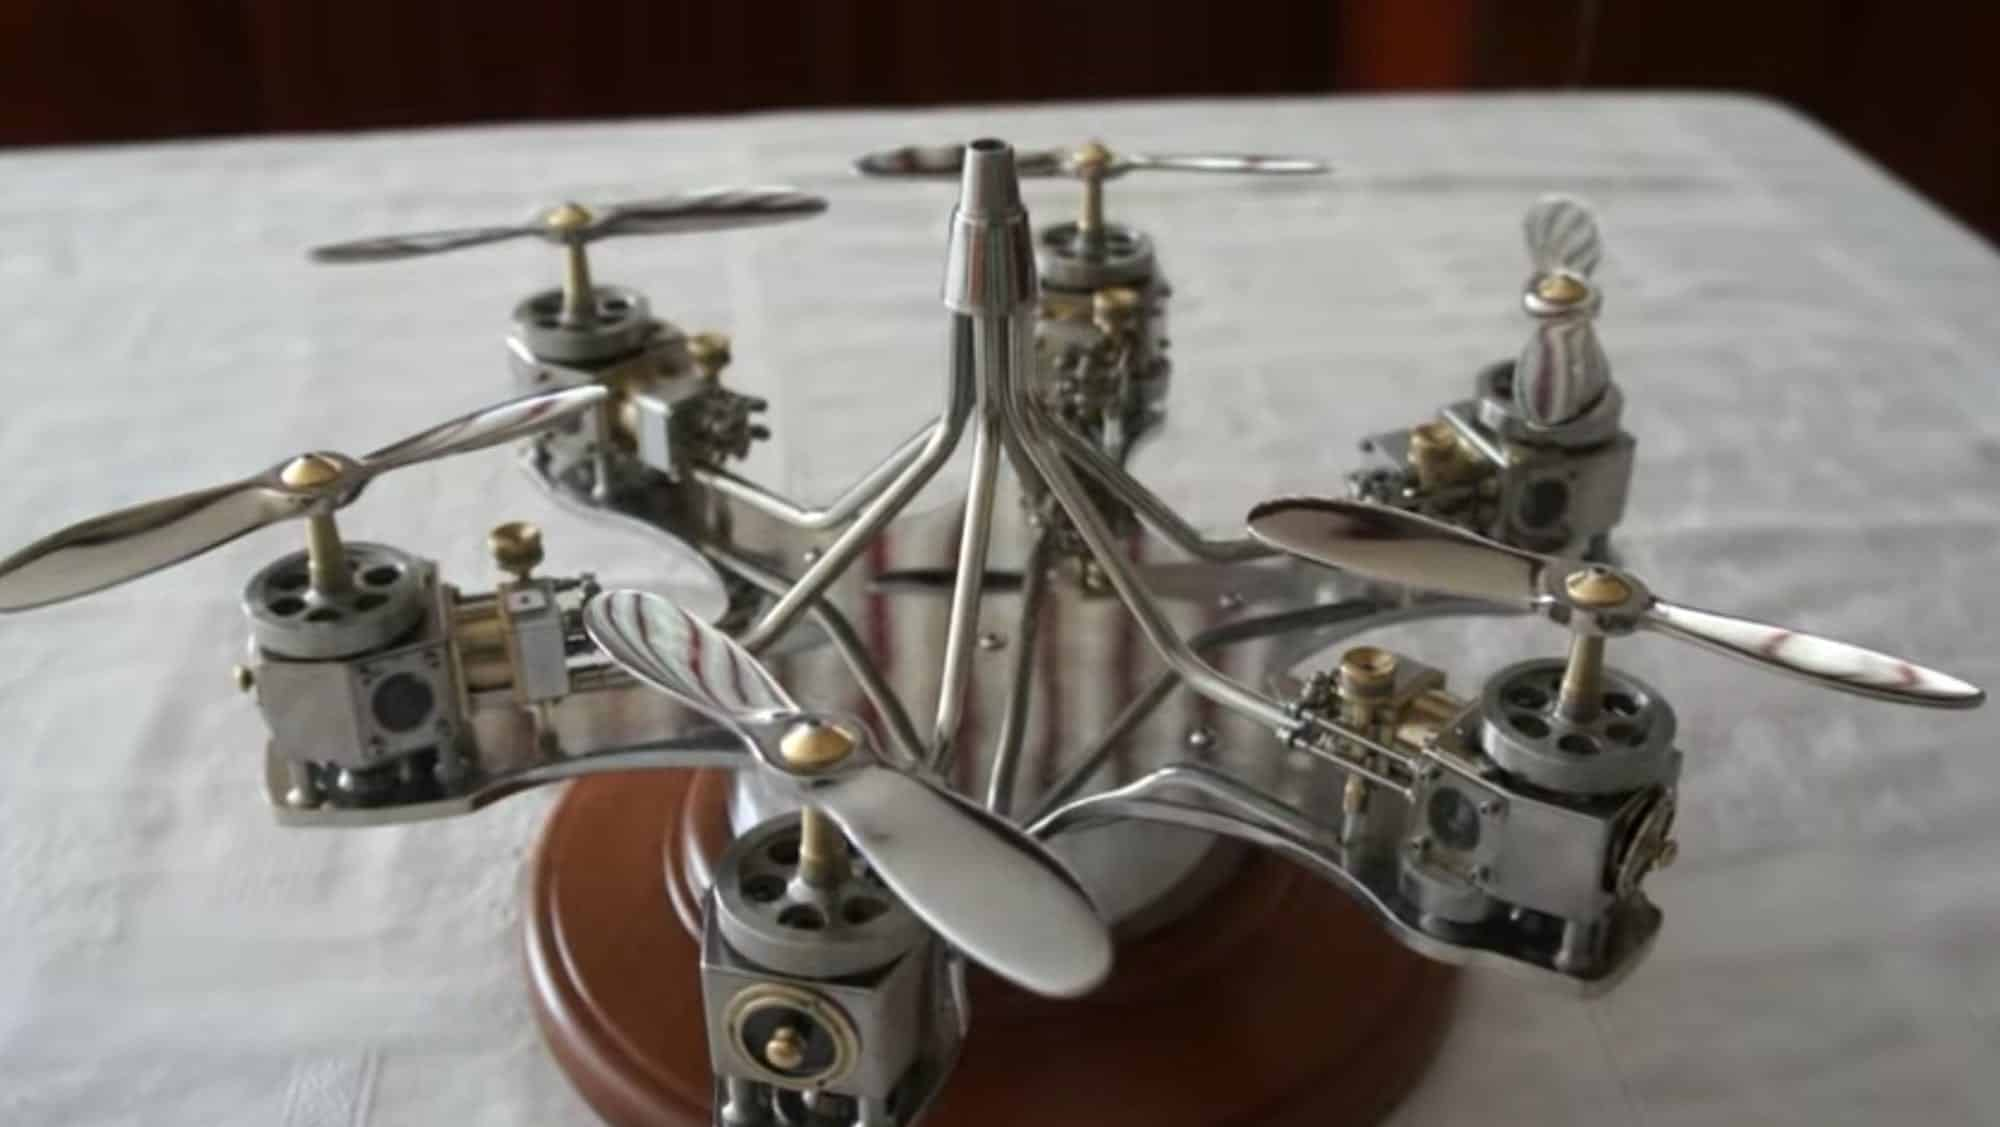 Flightless drone created by 80-year-old mechanic is a work-of-art [video]